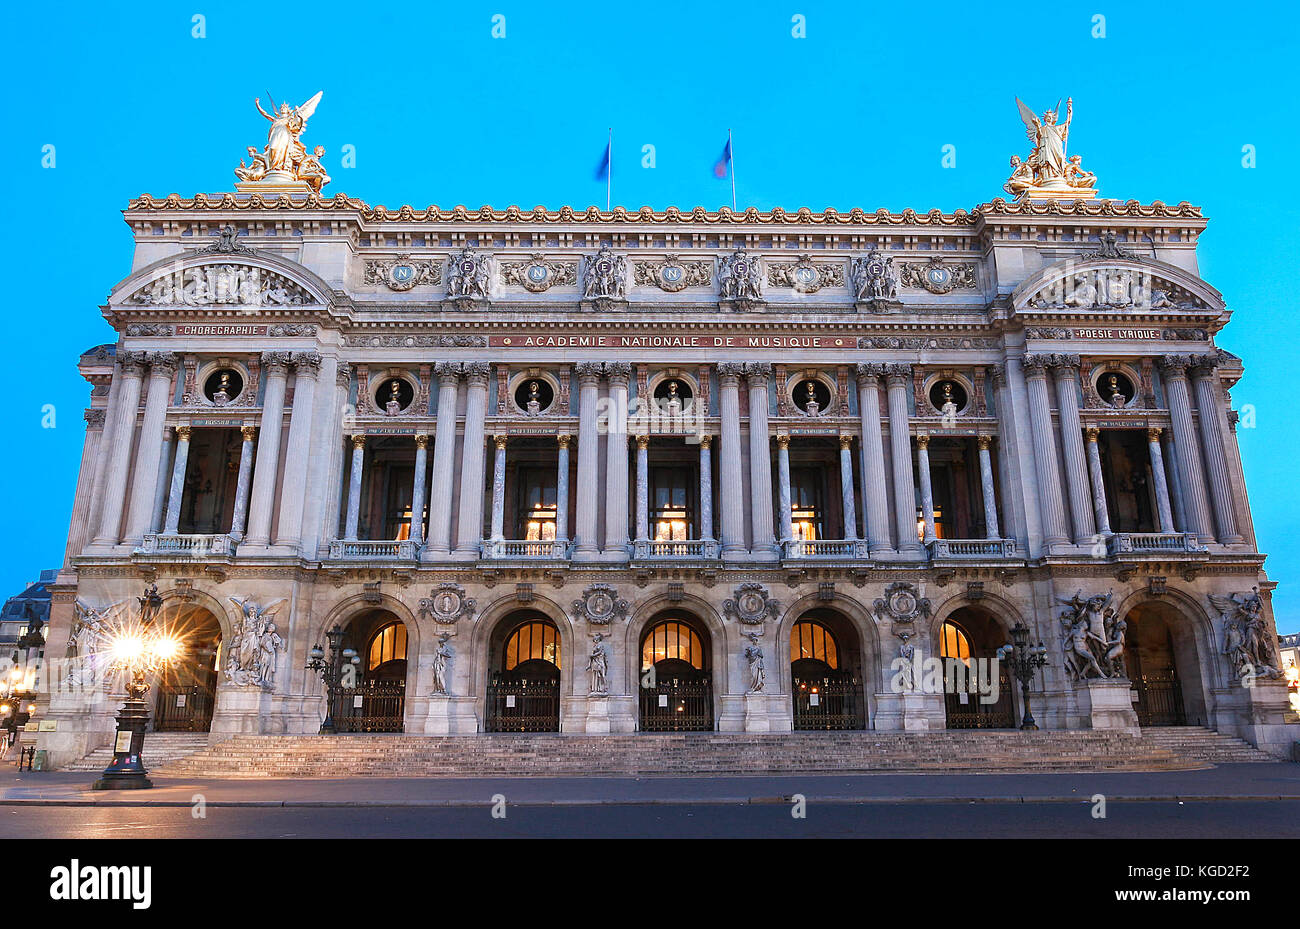 an analysis of paris opera building The phantom of the opera by gaston leroux by allen kromer series editors: jeanne m mc glinn and james e mcglinn t e a c h e r ' s g u i d e a teacher's guide to the signet classics edition of.